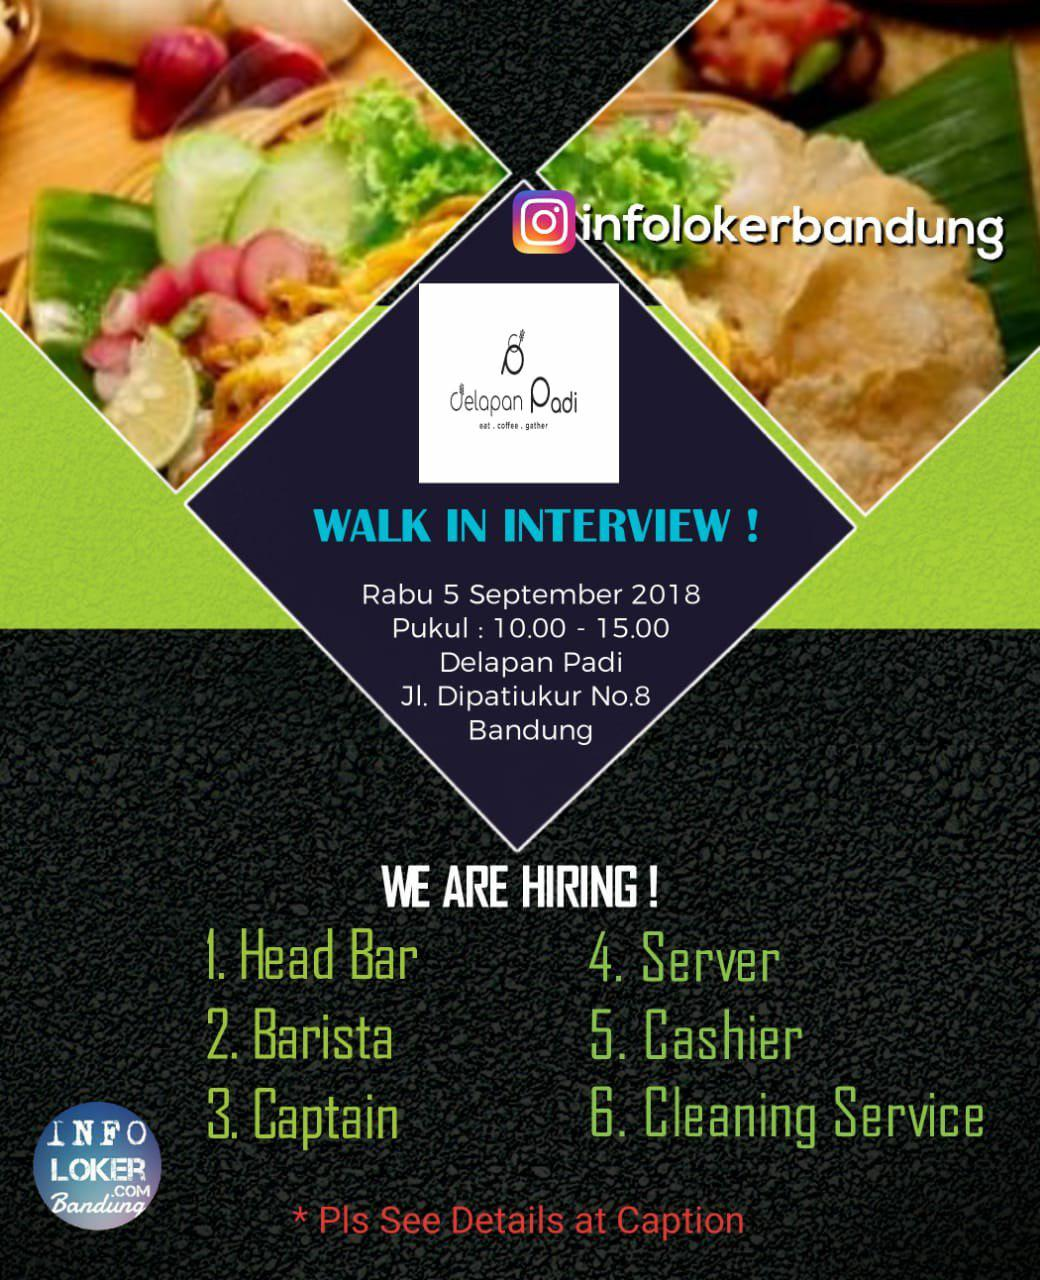 Walk In Interview Delapan Padi Resto 5 September 2018